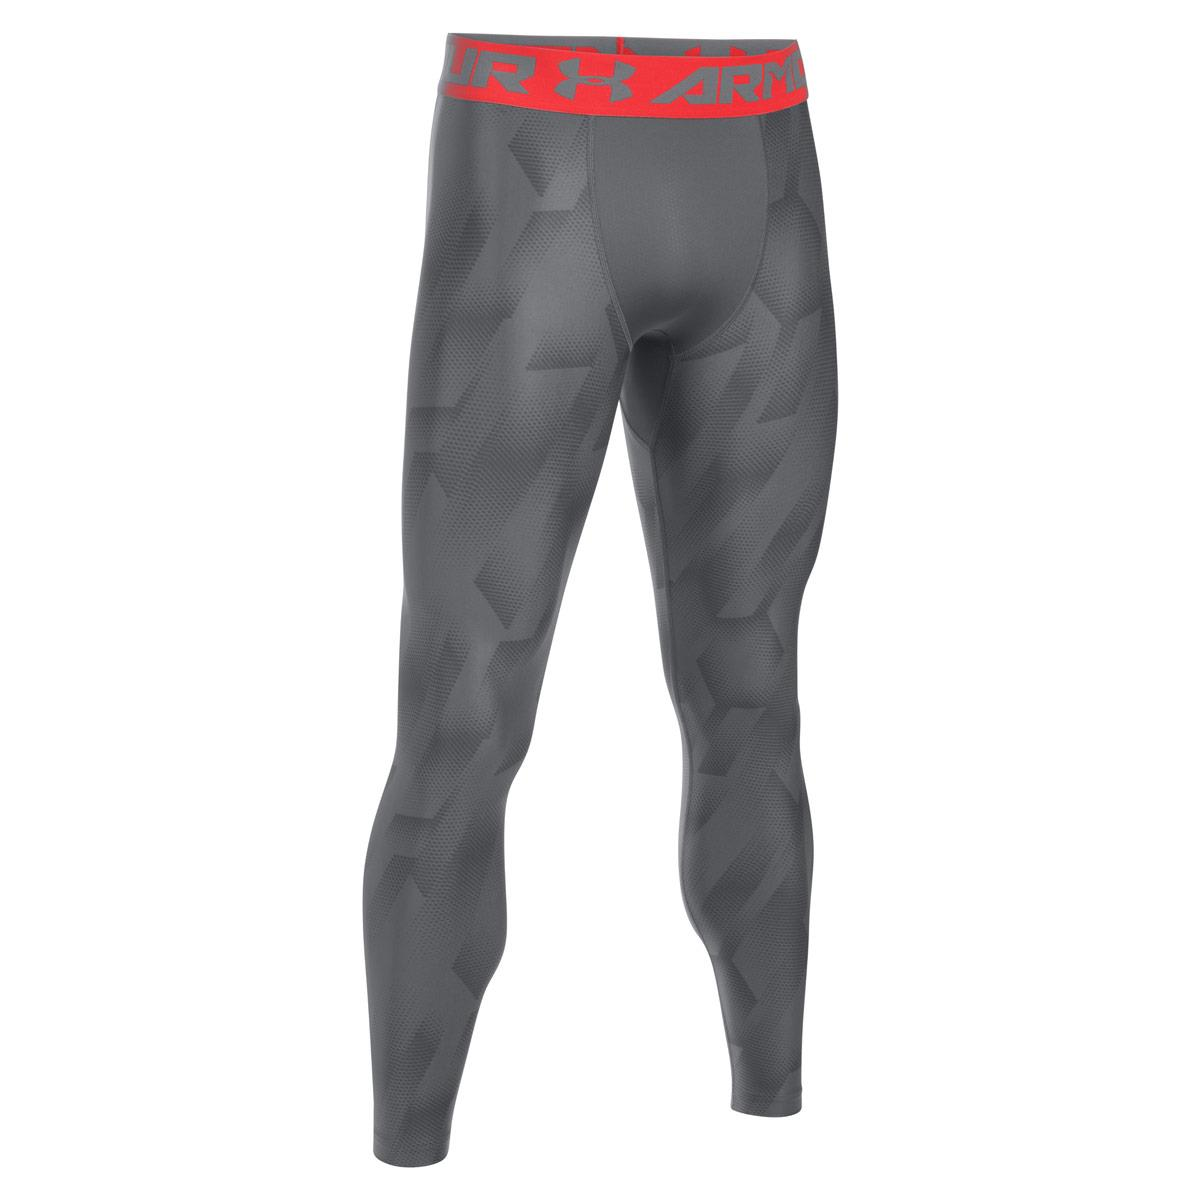 0d041699764004 Under Armour Heatgear Armour Printed Compression Leggings Grey - Front